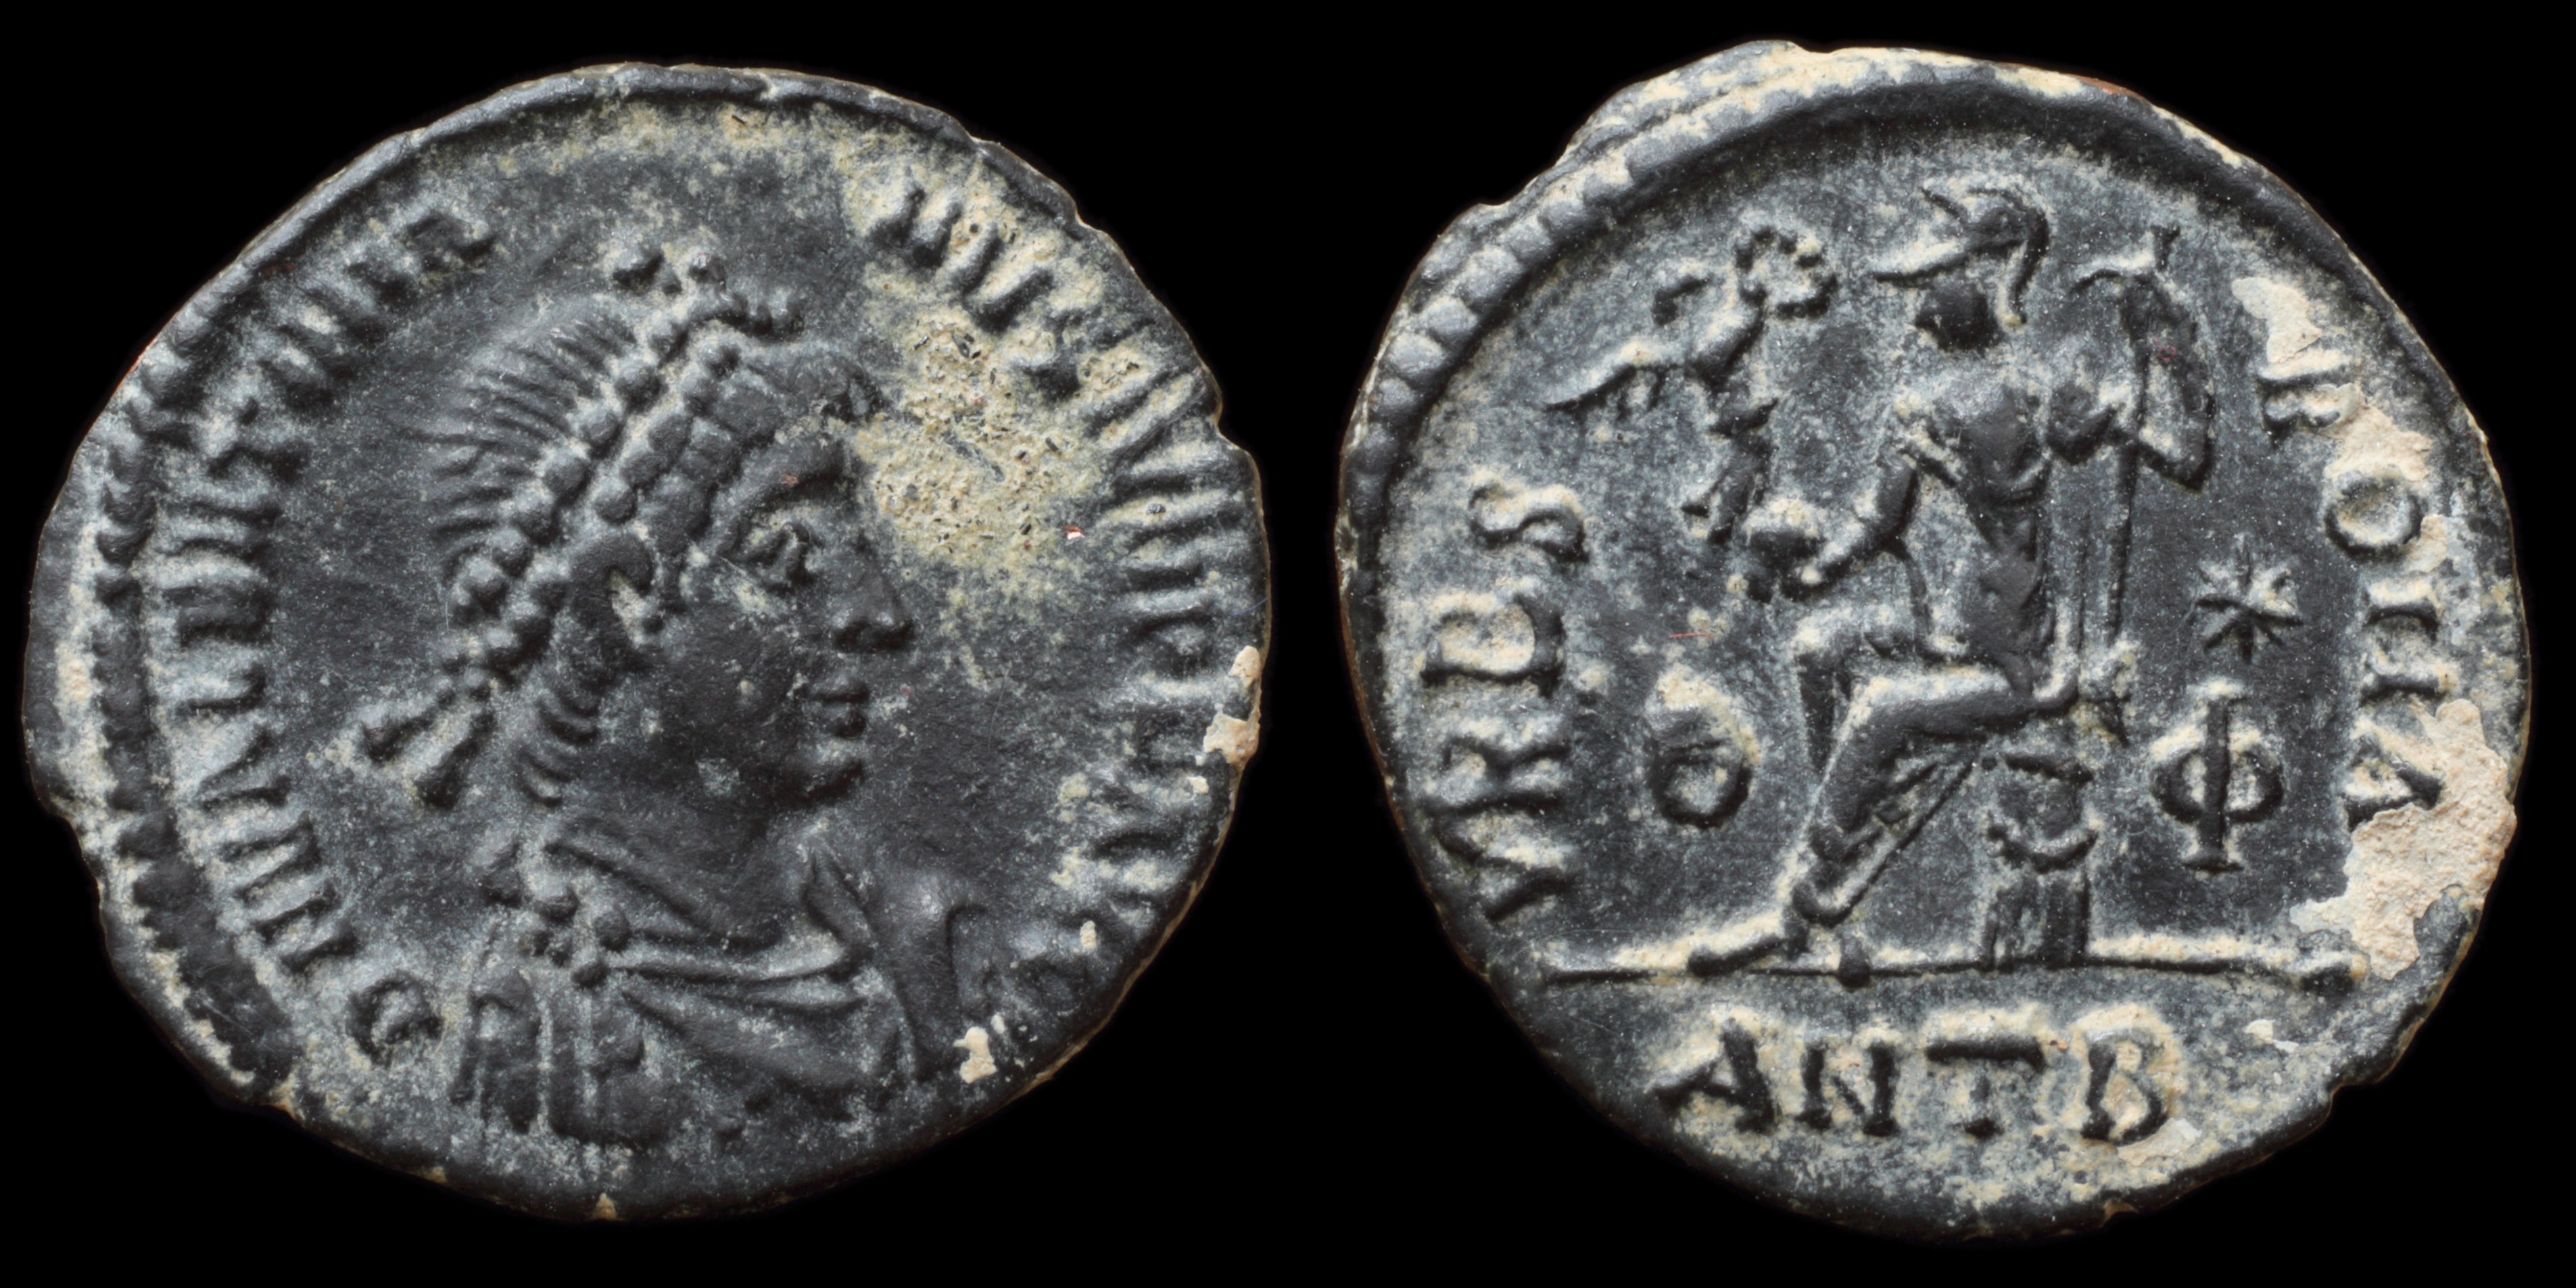 /Files/Images/Coinsite/CoinDB/1560_Valentinian_II_Antioch.jpg